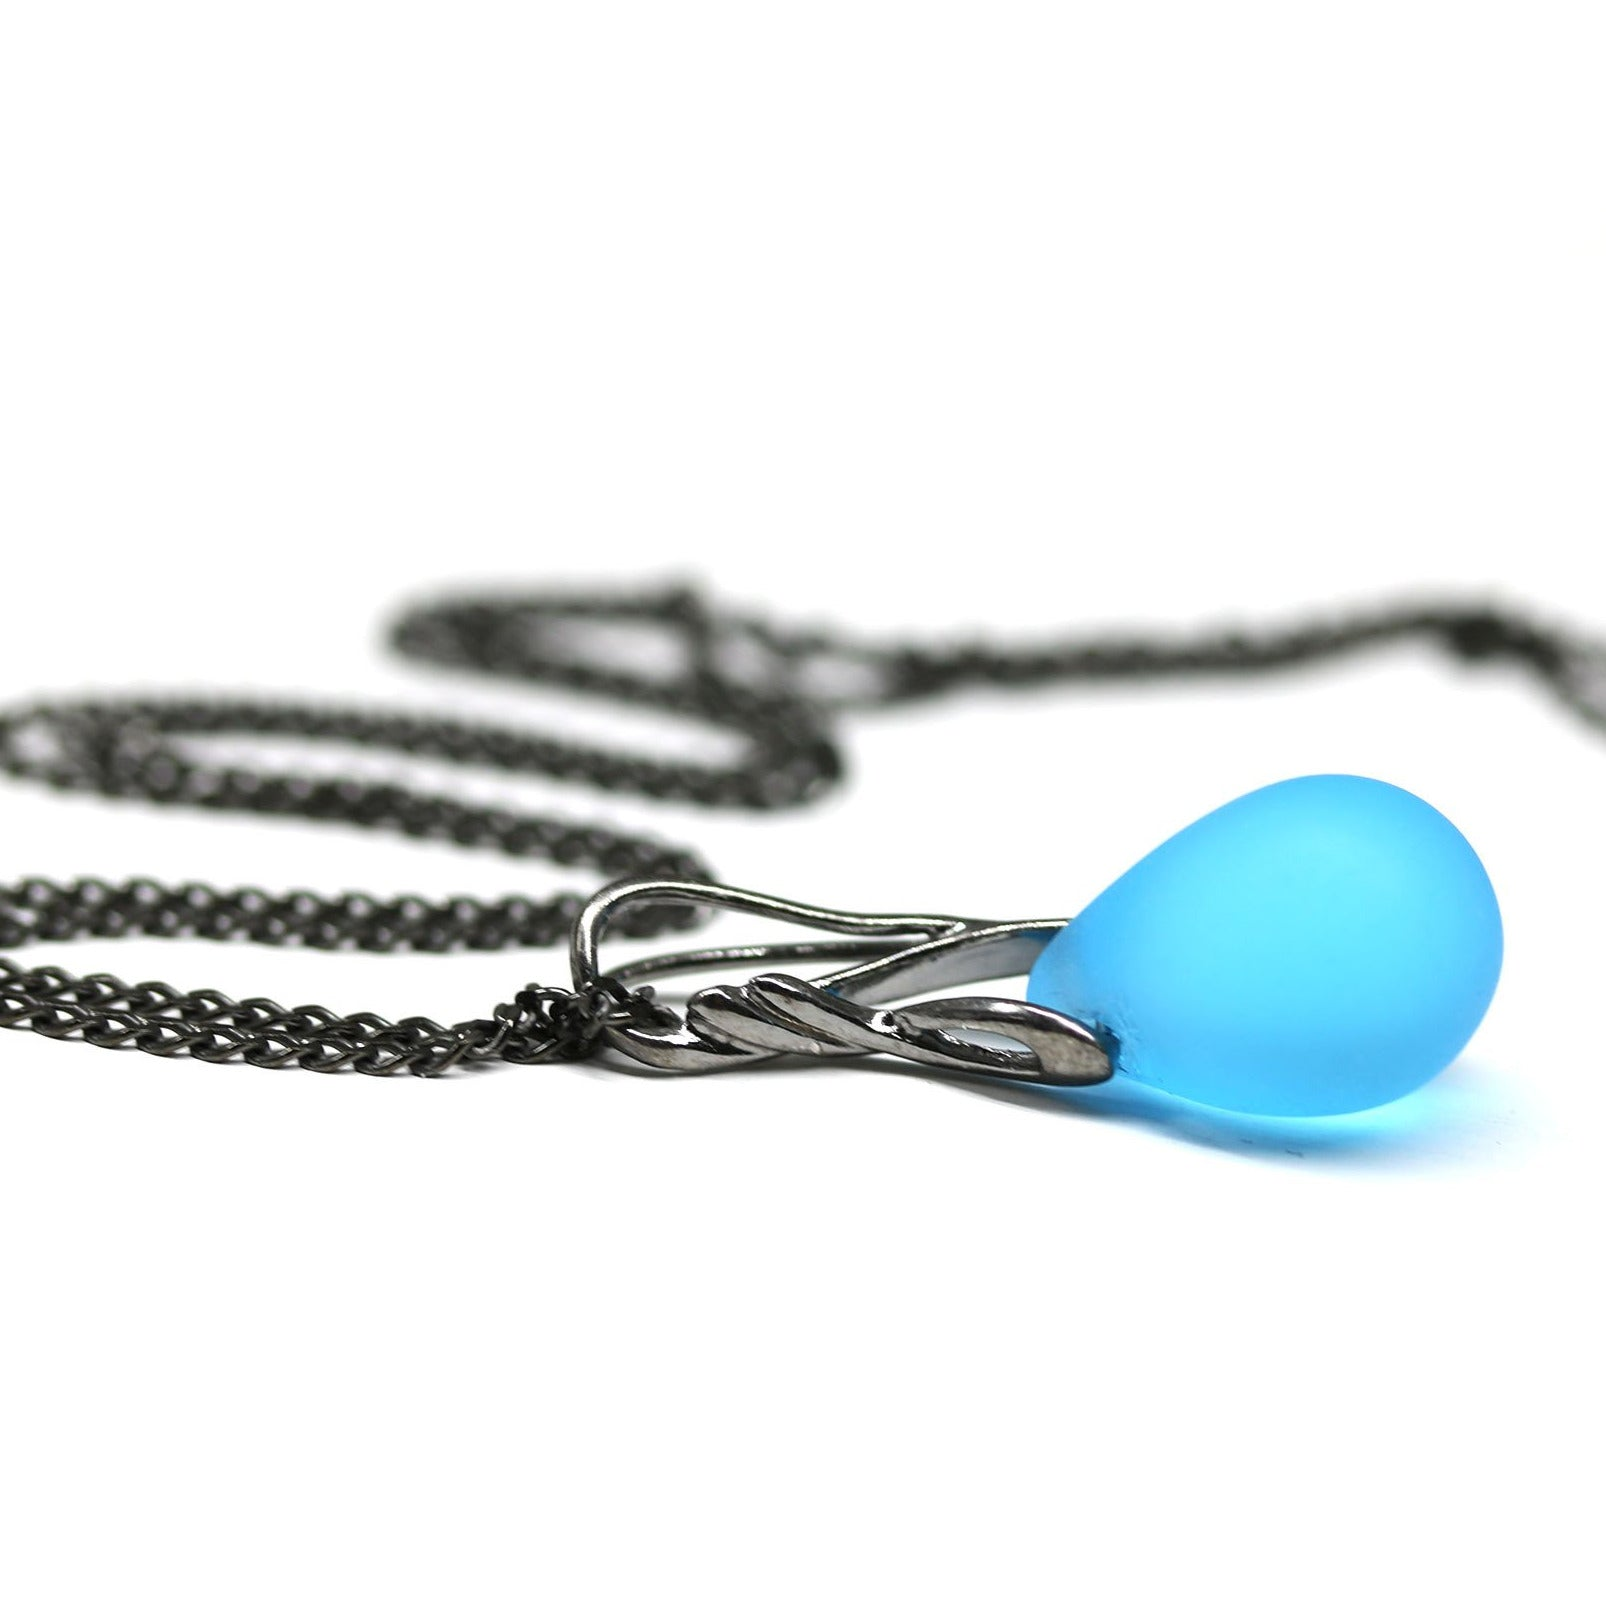 Frosted blue drop glass pendant on black rhodium chain